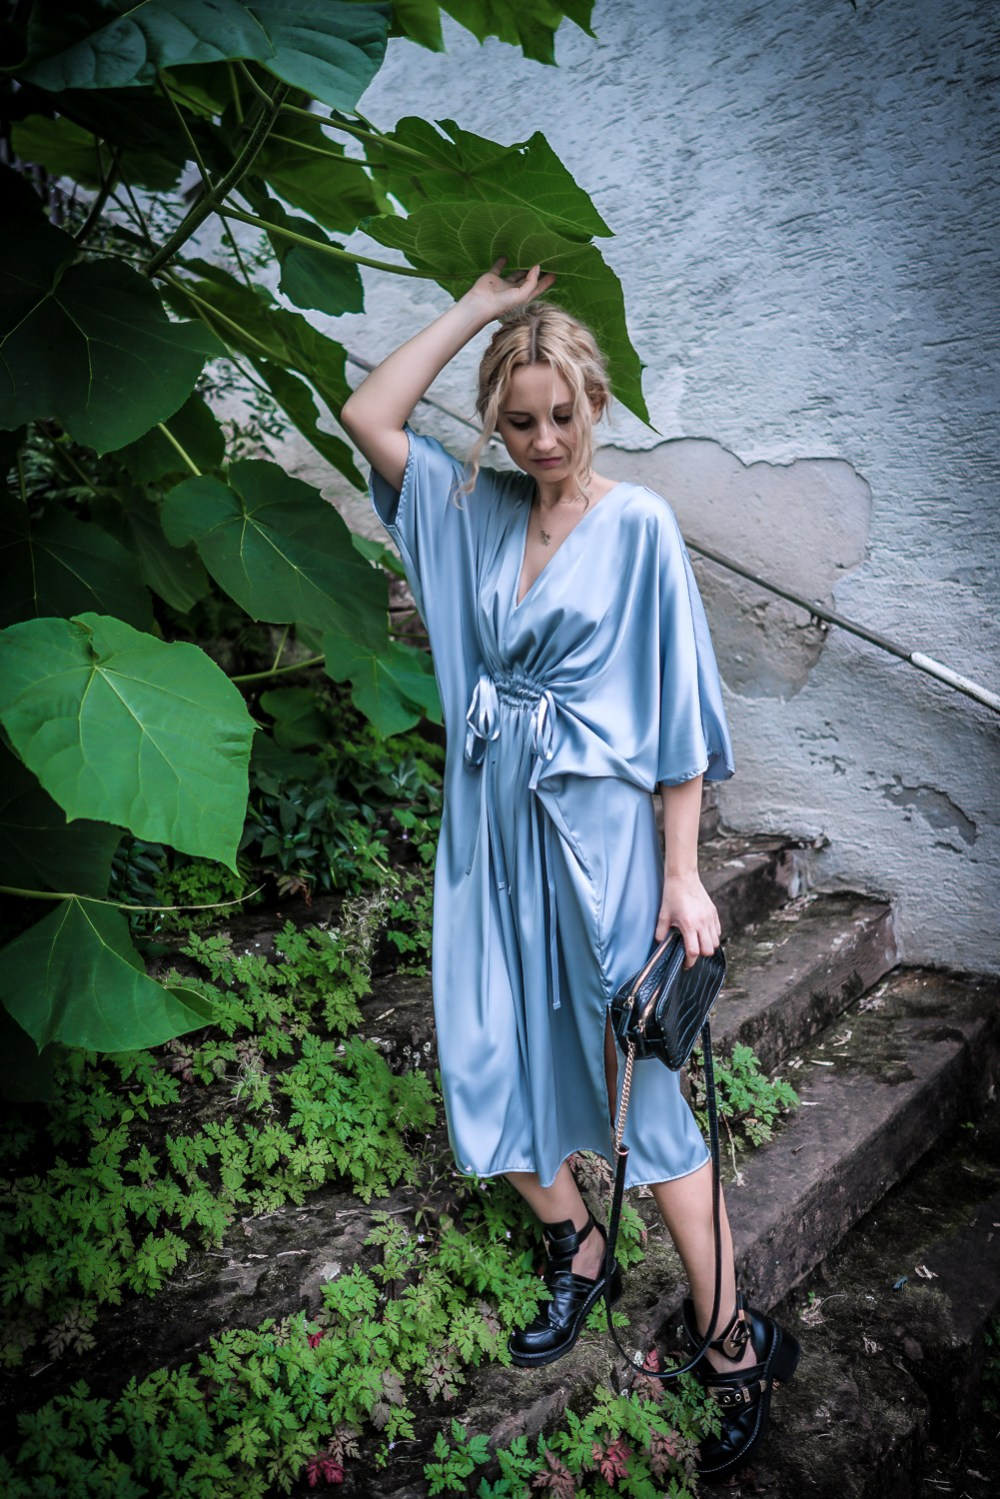 hm silver silk midi dress romantic girl street style look ootd outfit secret place vogue ootd